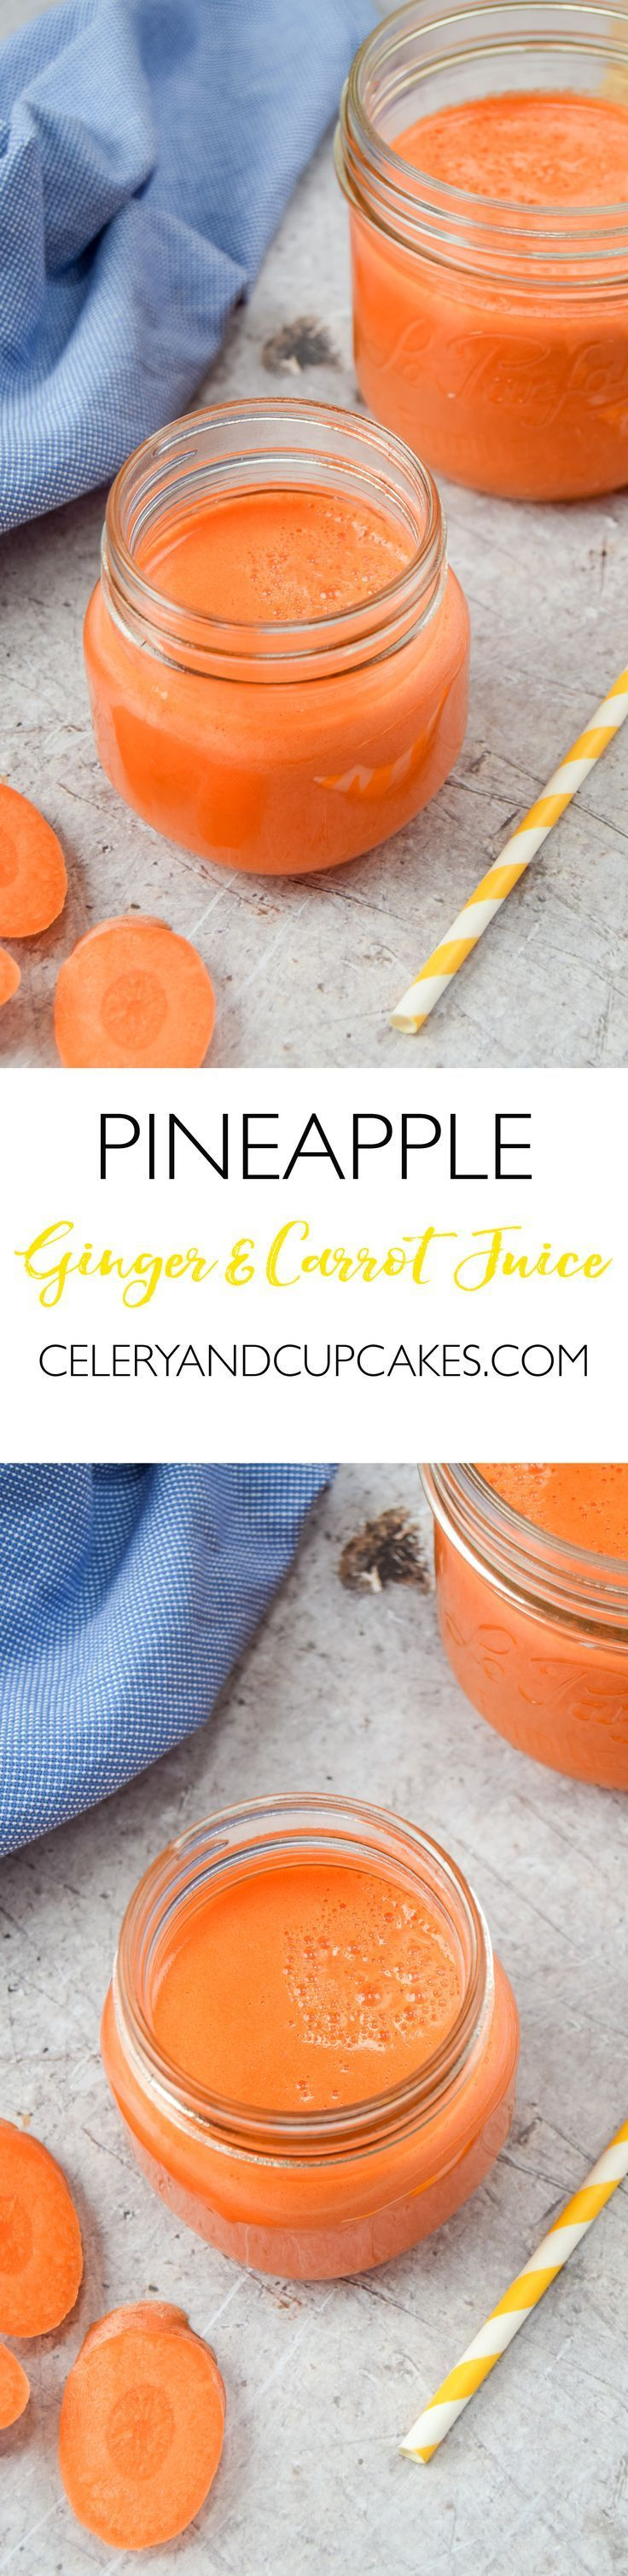 Pineapple, Ginger & Carrot Juice - a refreshing and zingy juice recipe that makes a perfect healthy afternoon pick me up!